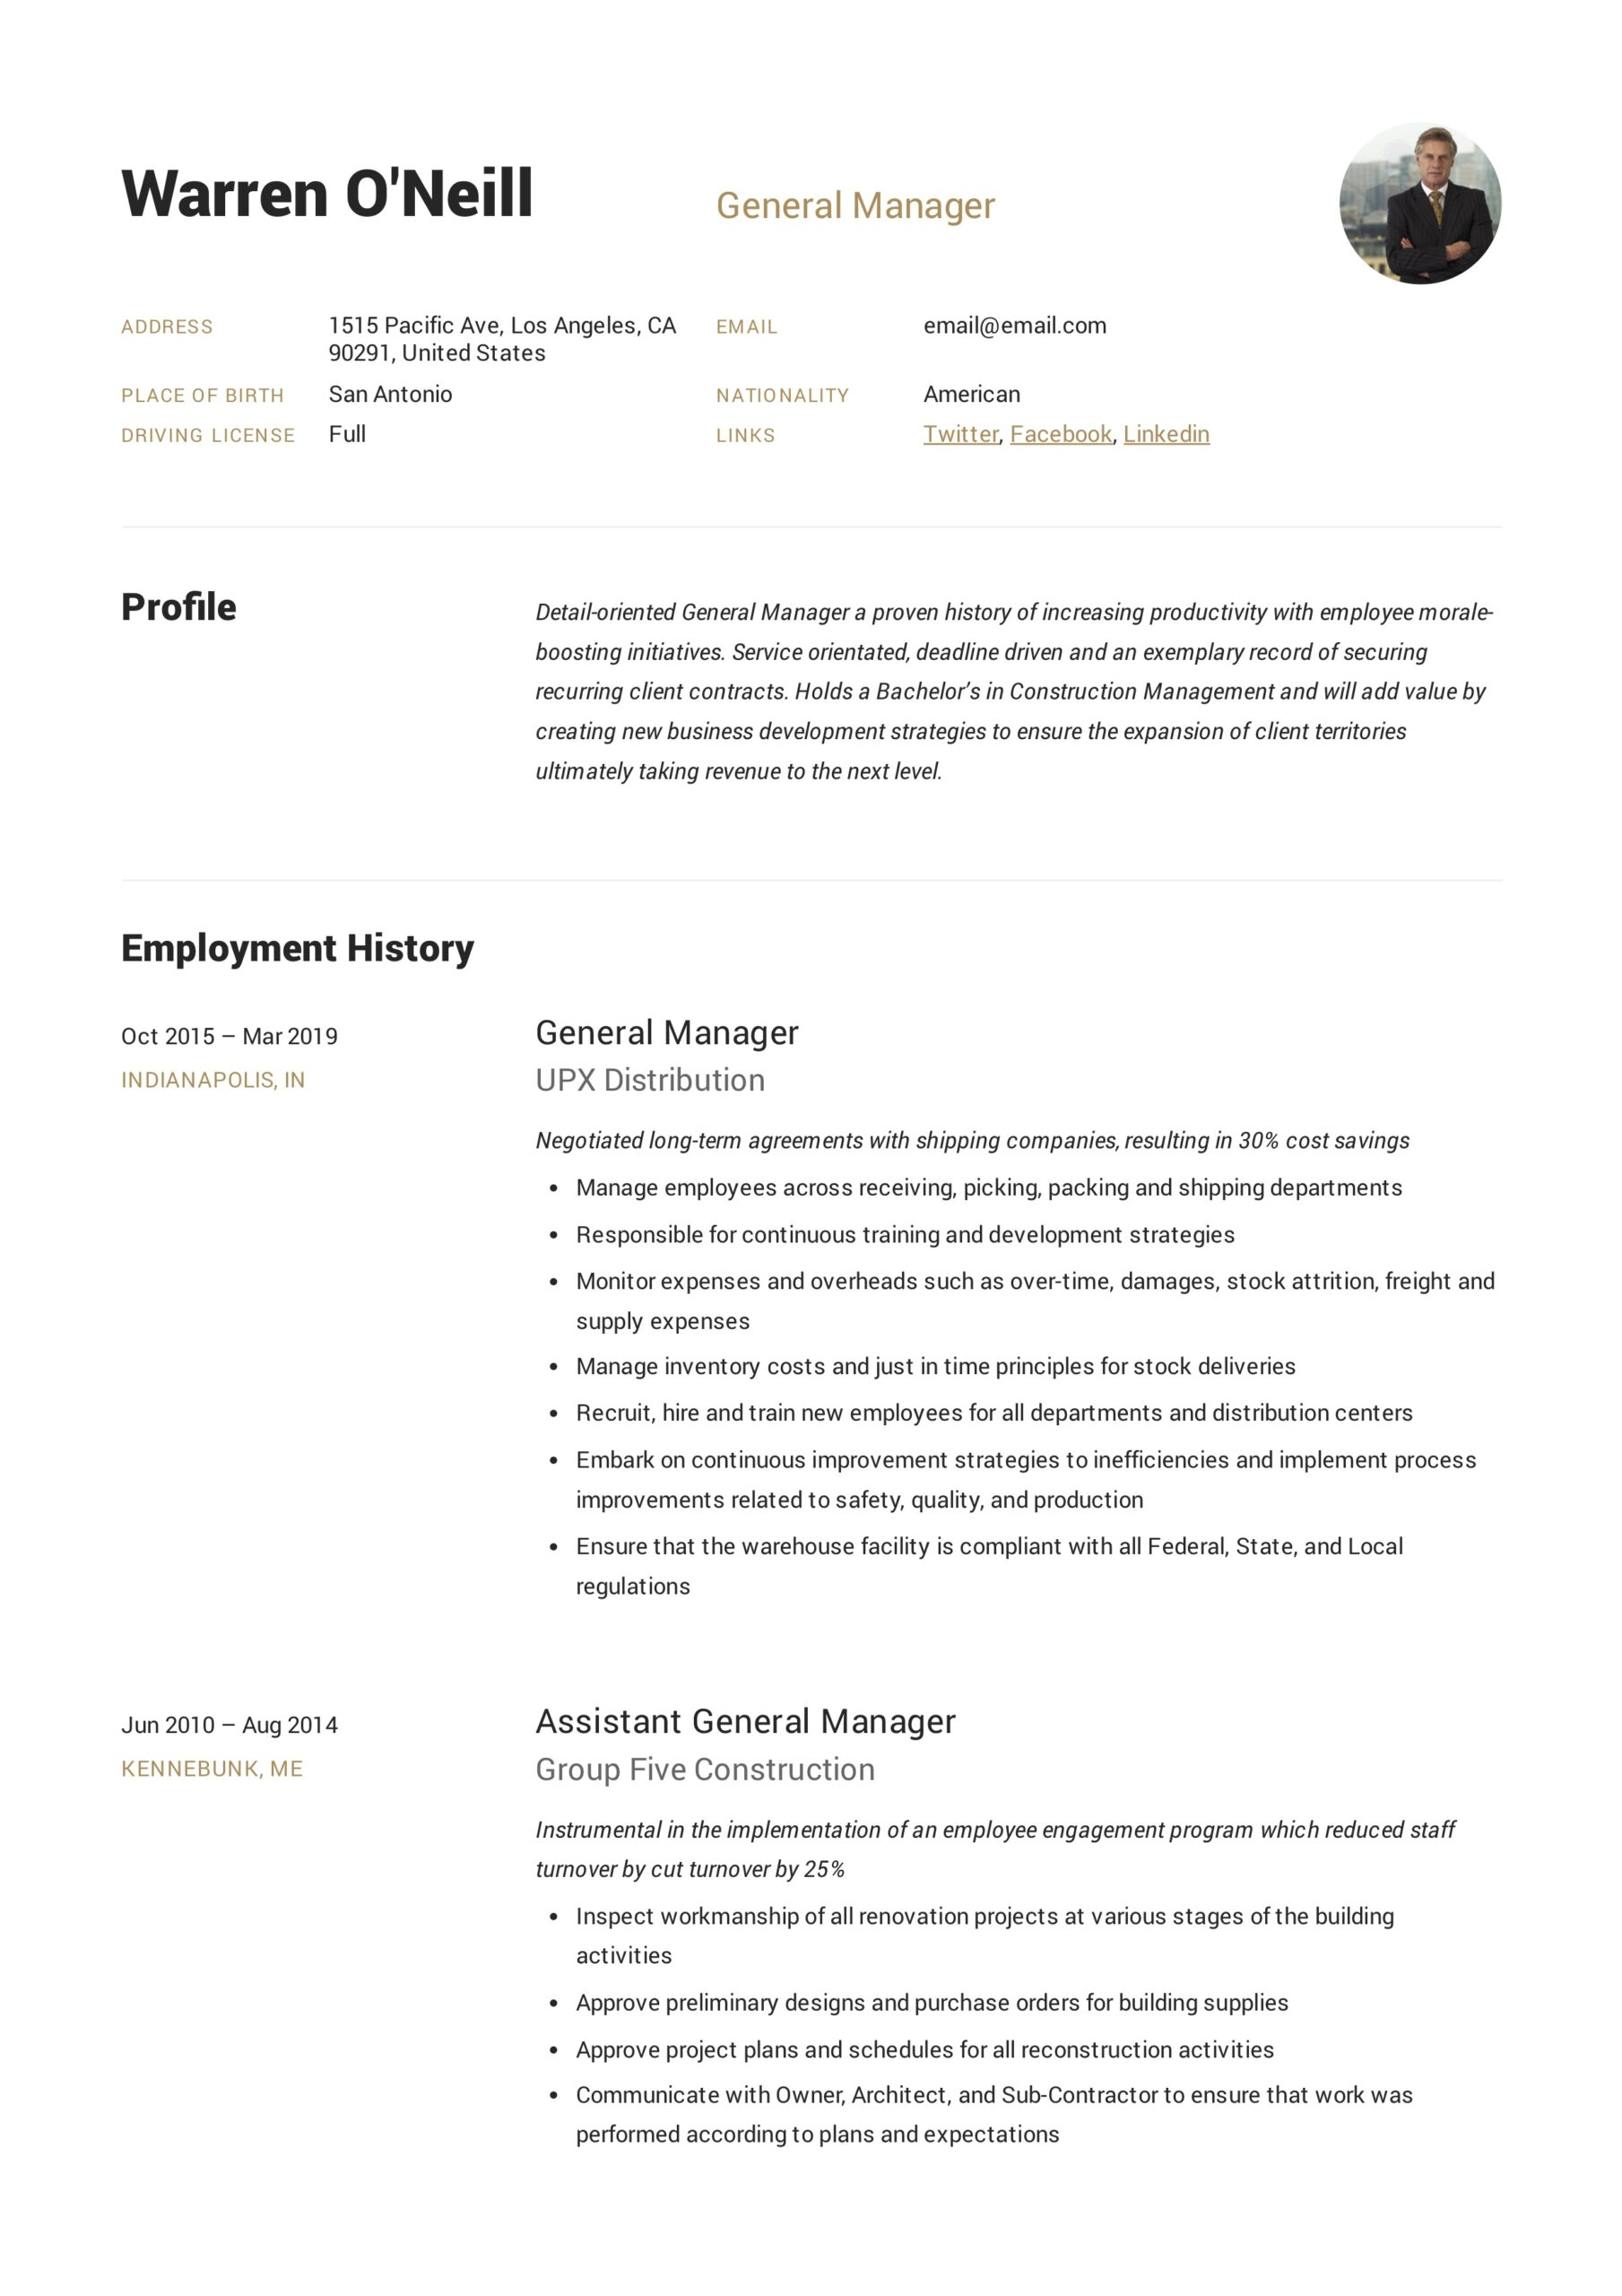 general manager resume writing guide examples pdf skills for neill hybrid template film Resume Skills For General Manager Resume